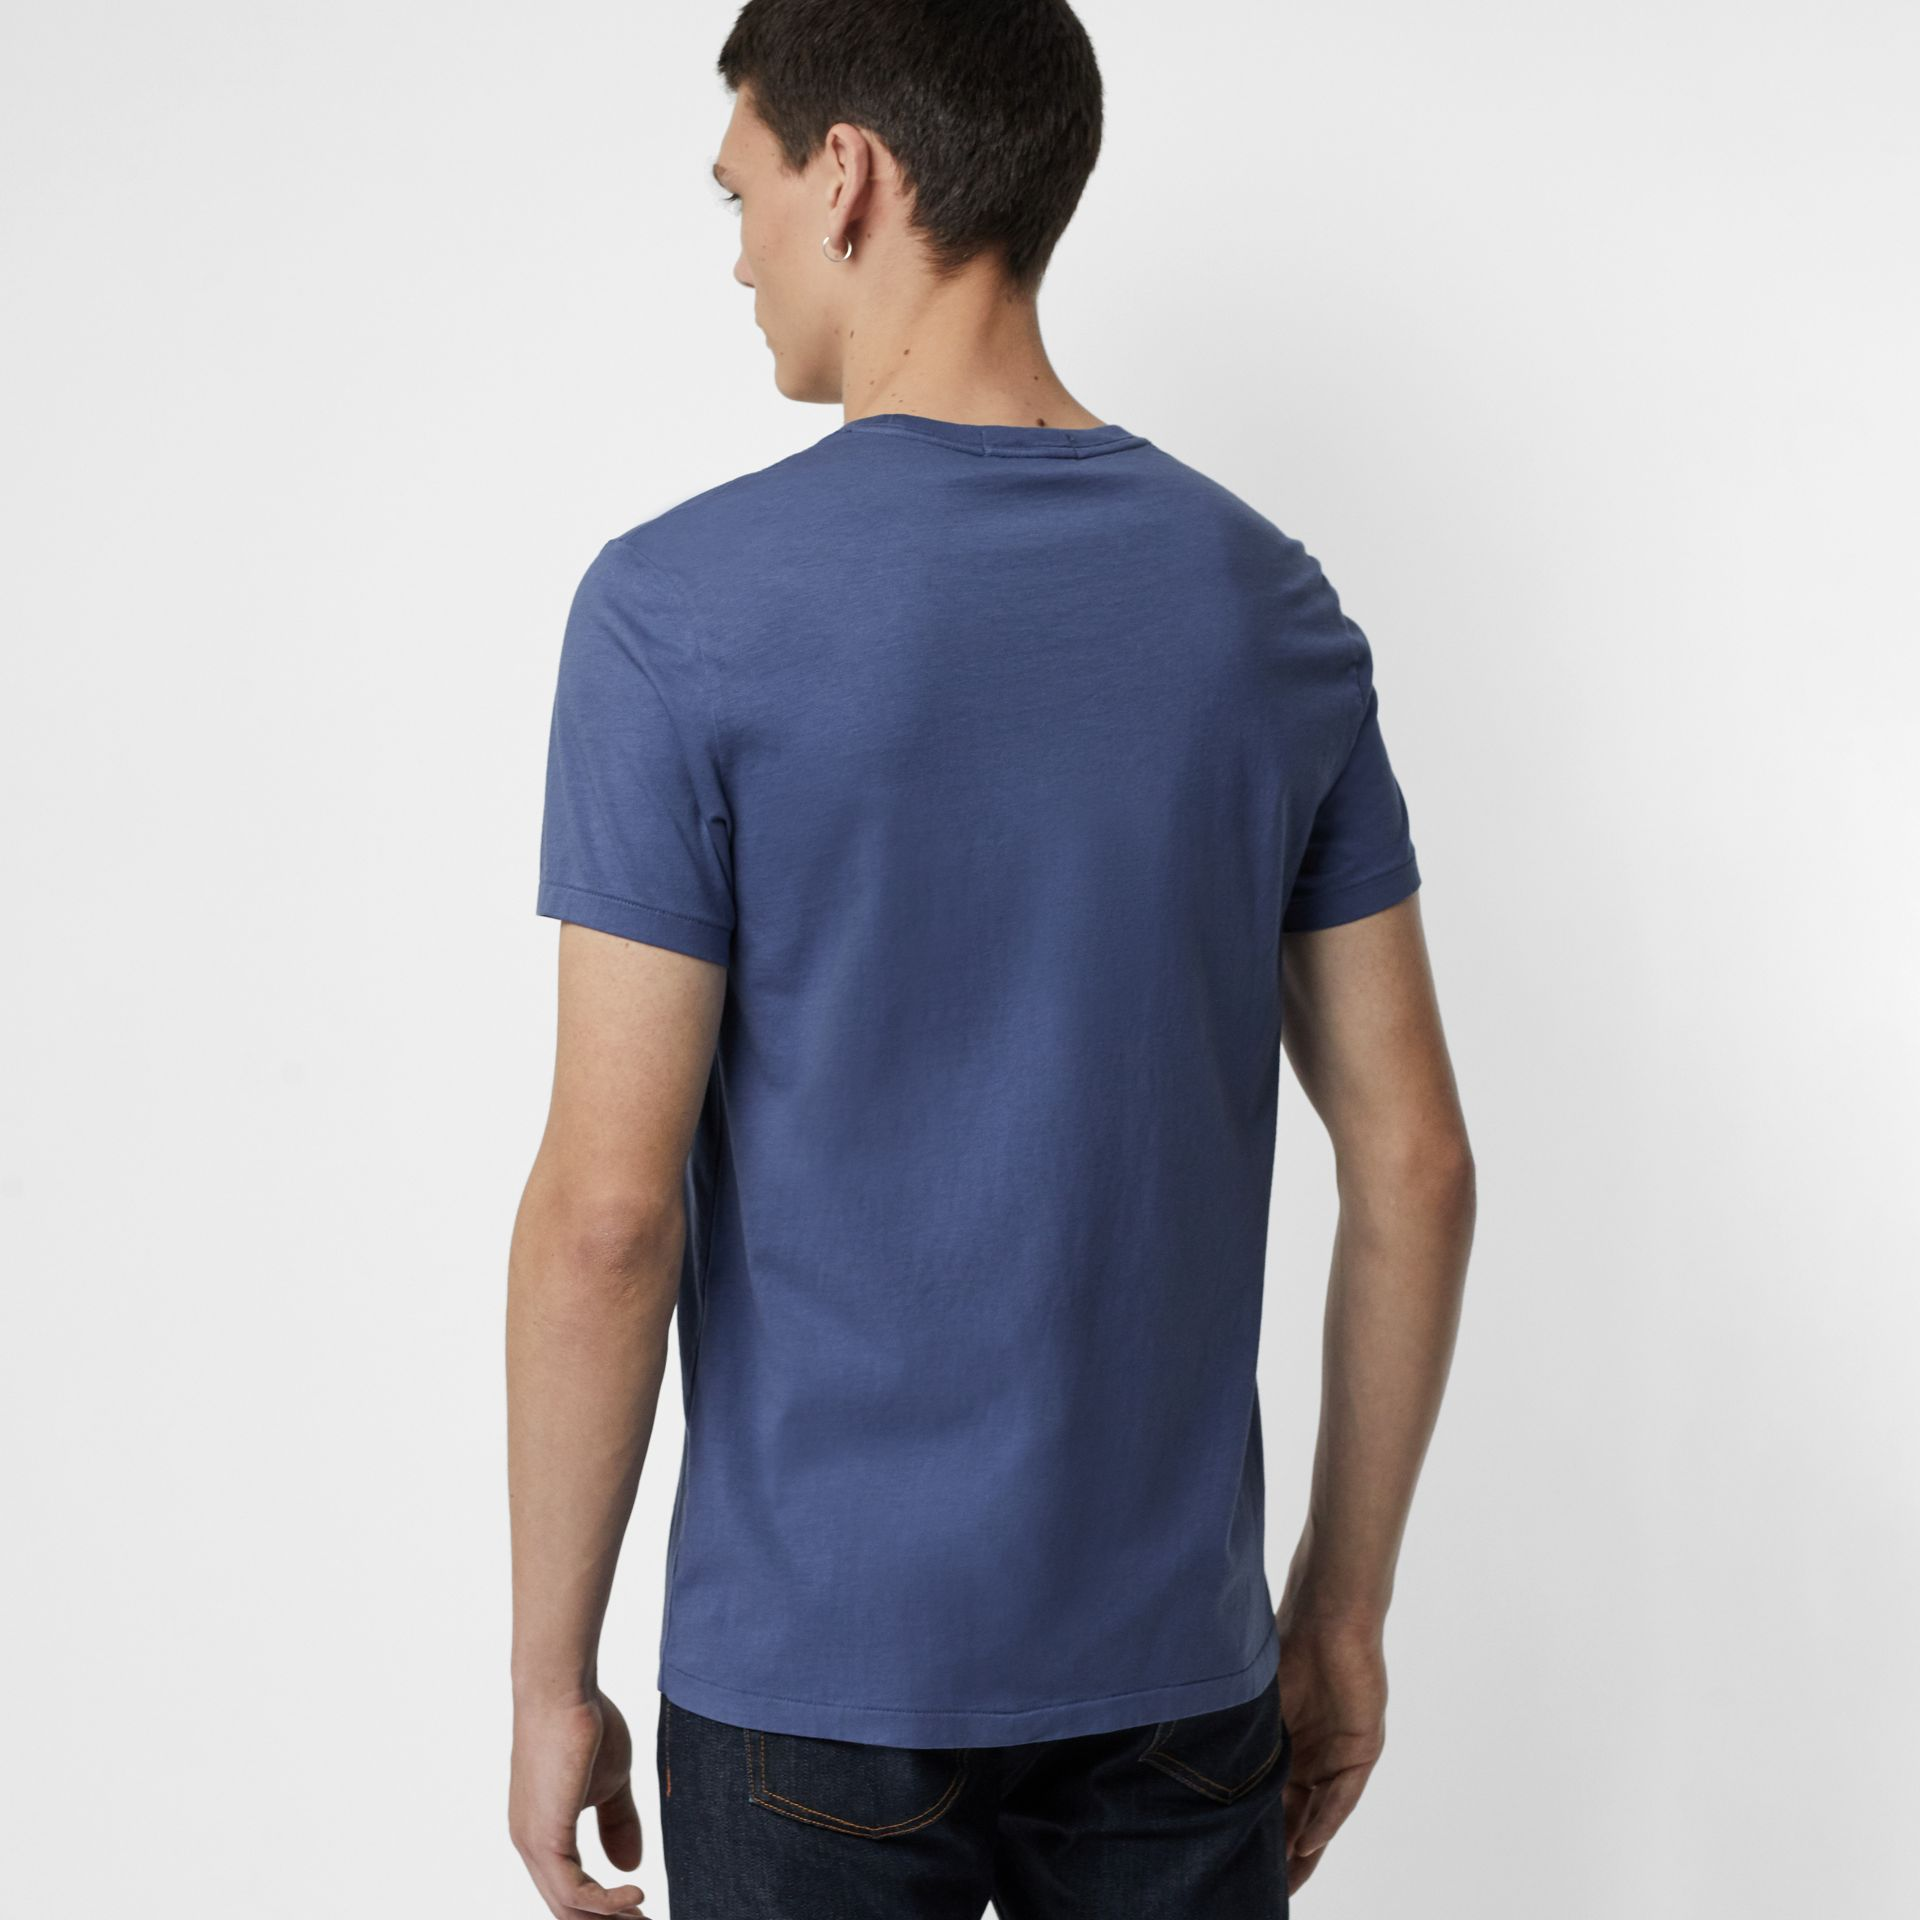 Cotton T-shirt in Pebble Blue - Men | Burberry - gallery image 2